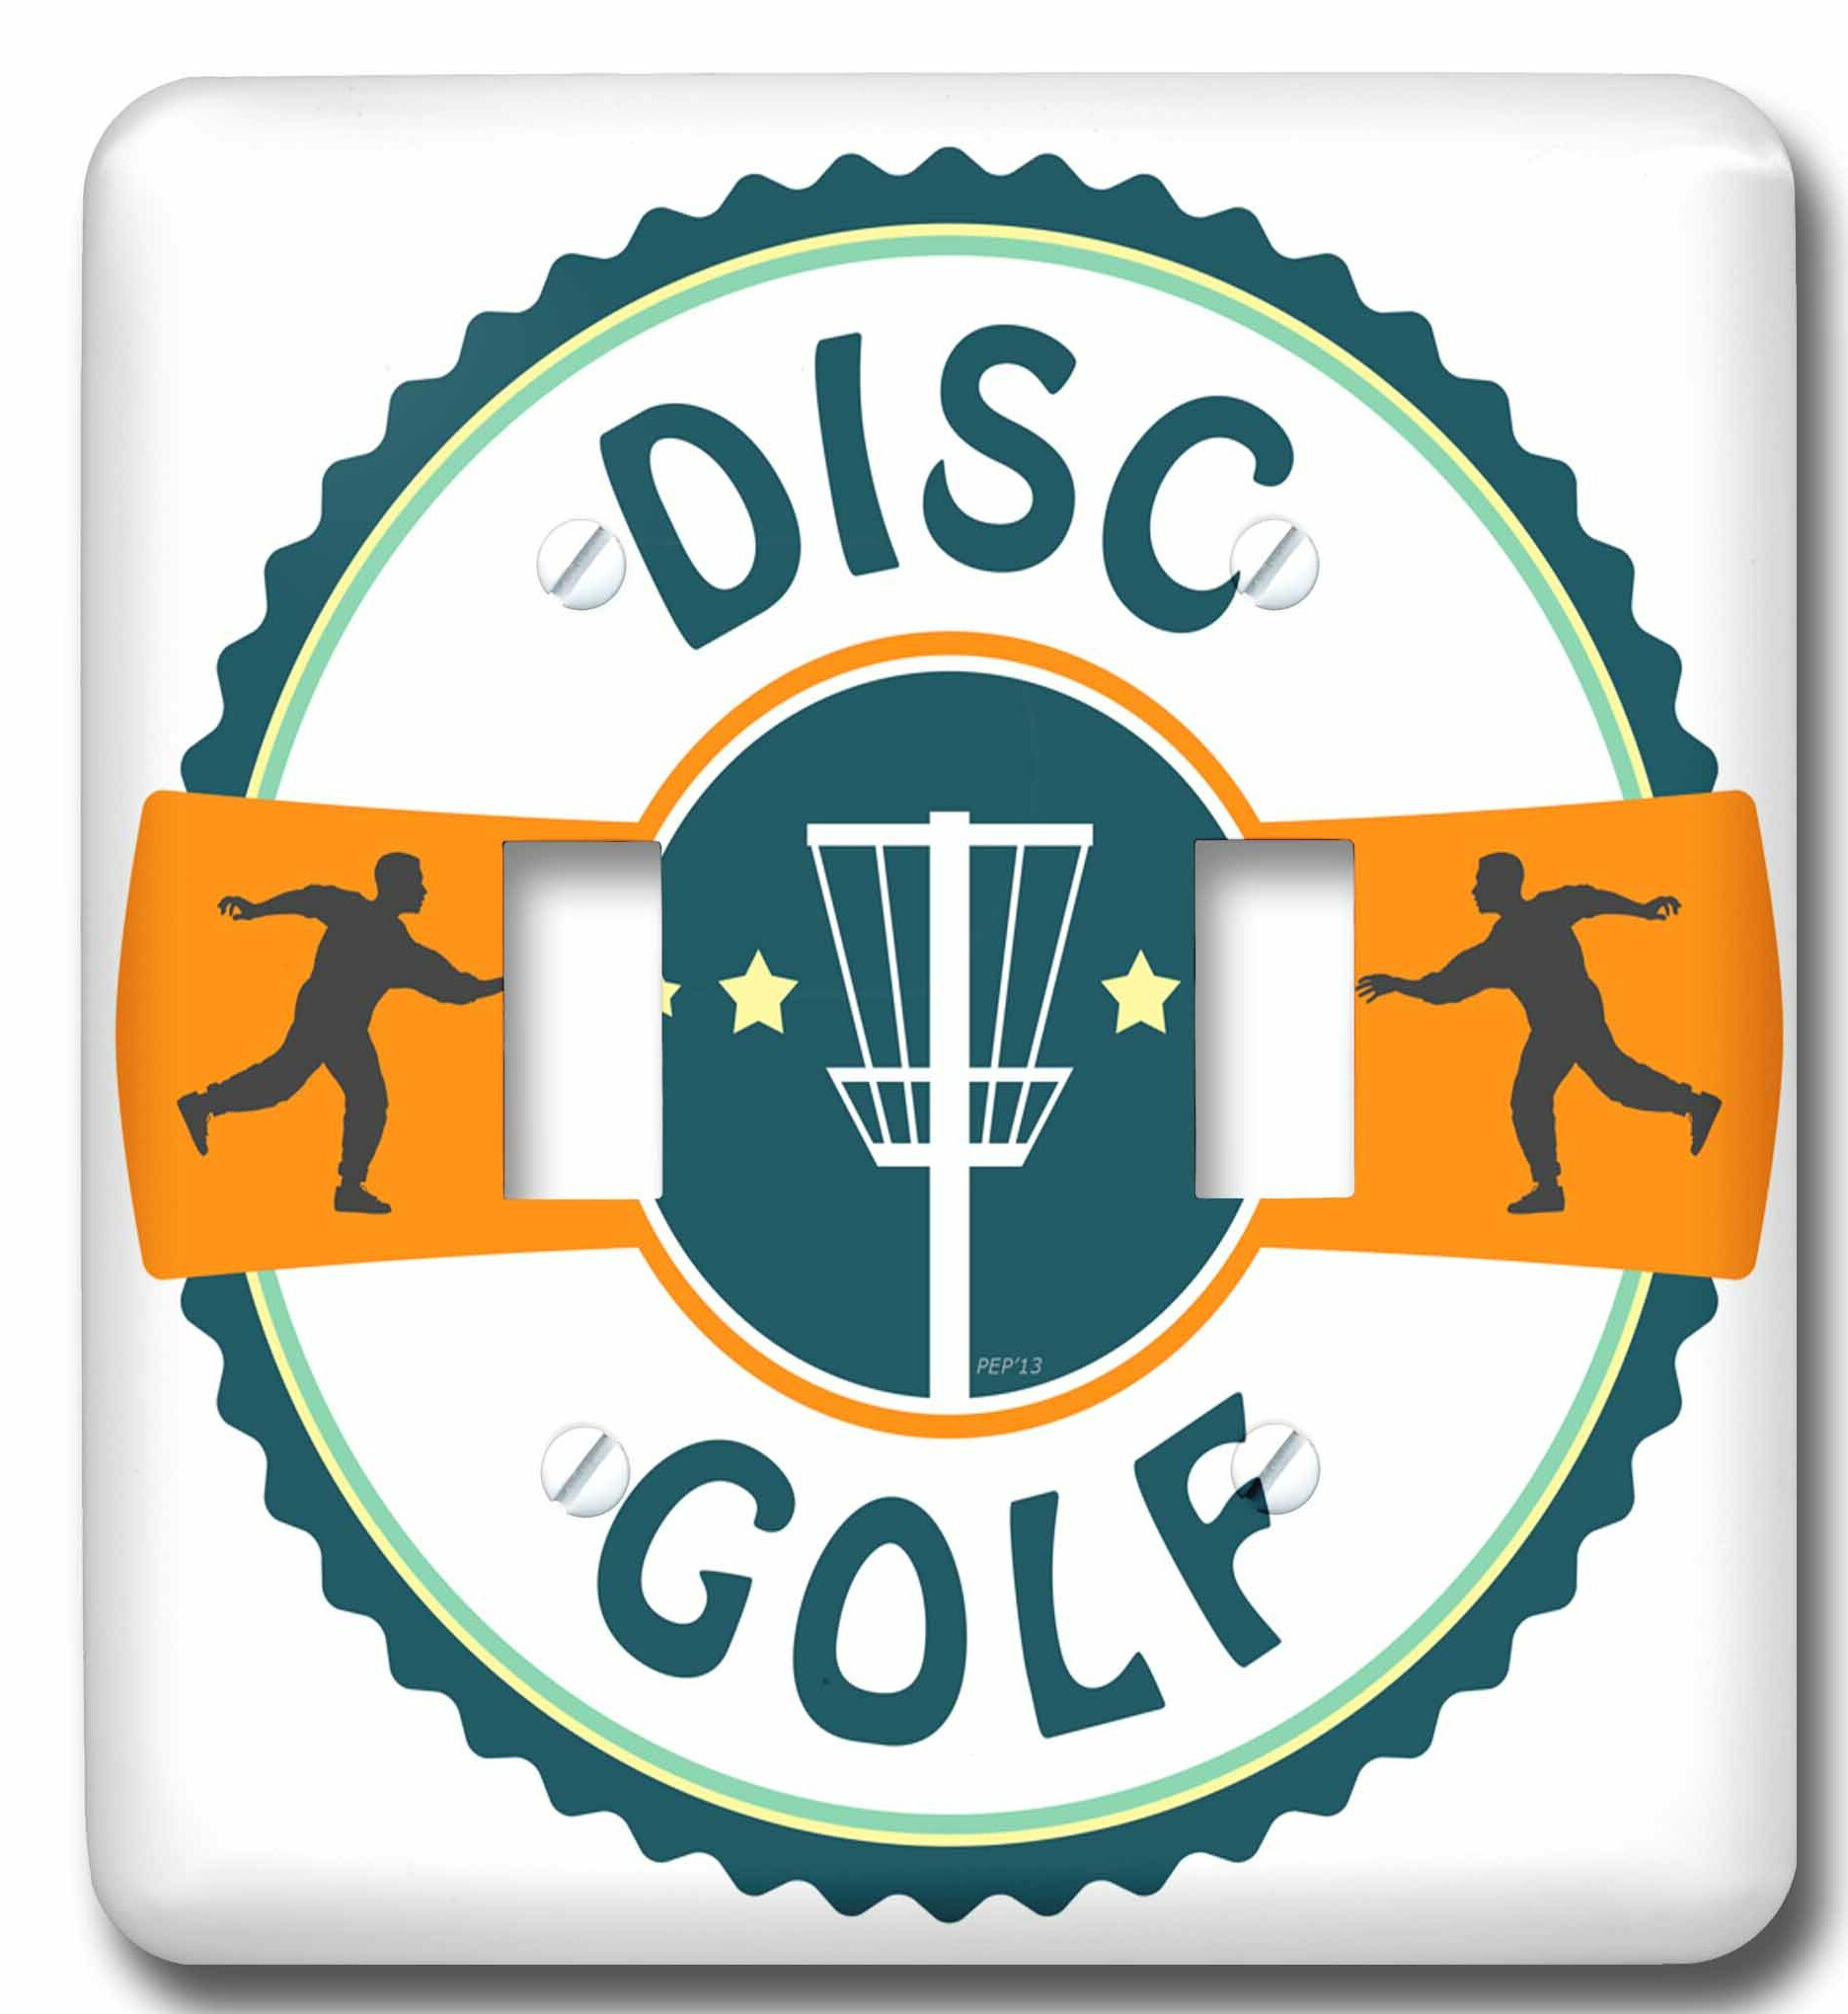 3drose Disc Golf Silhouette Of Putters Throwing At A Disc Golf Basket 2 Gang Toggle Light Switch Wall Plate Wayfair